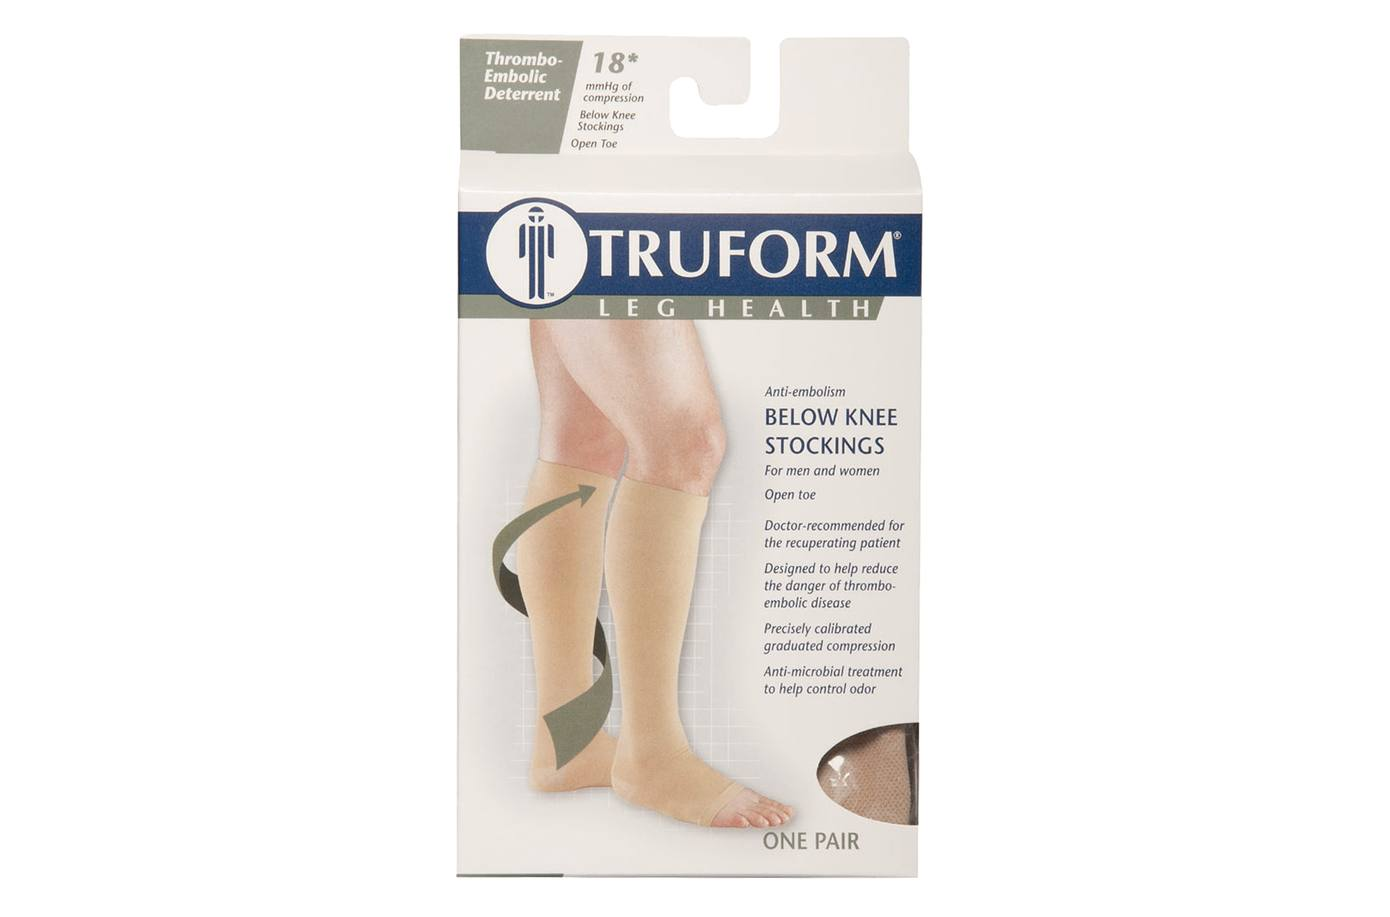 ebb1ded3f0 0808 18MMHG KNEE HIGH OPEN TOE STOCK ANTI-EMBOLISM for sale in San Diego,  CA | Eric's Medical Supply (619) 298-9640